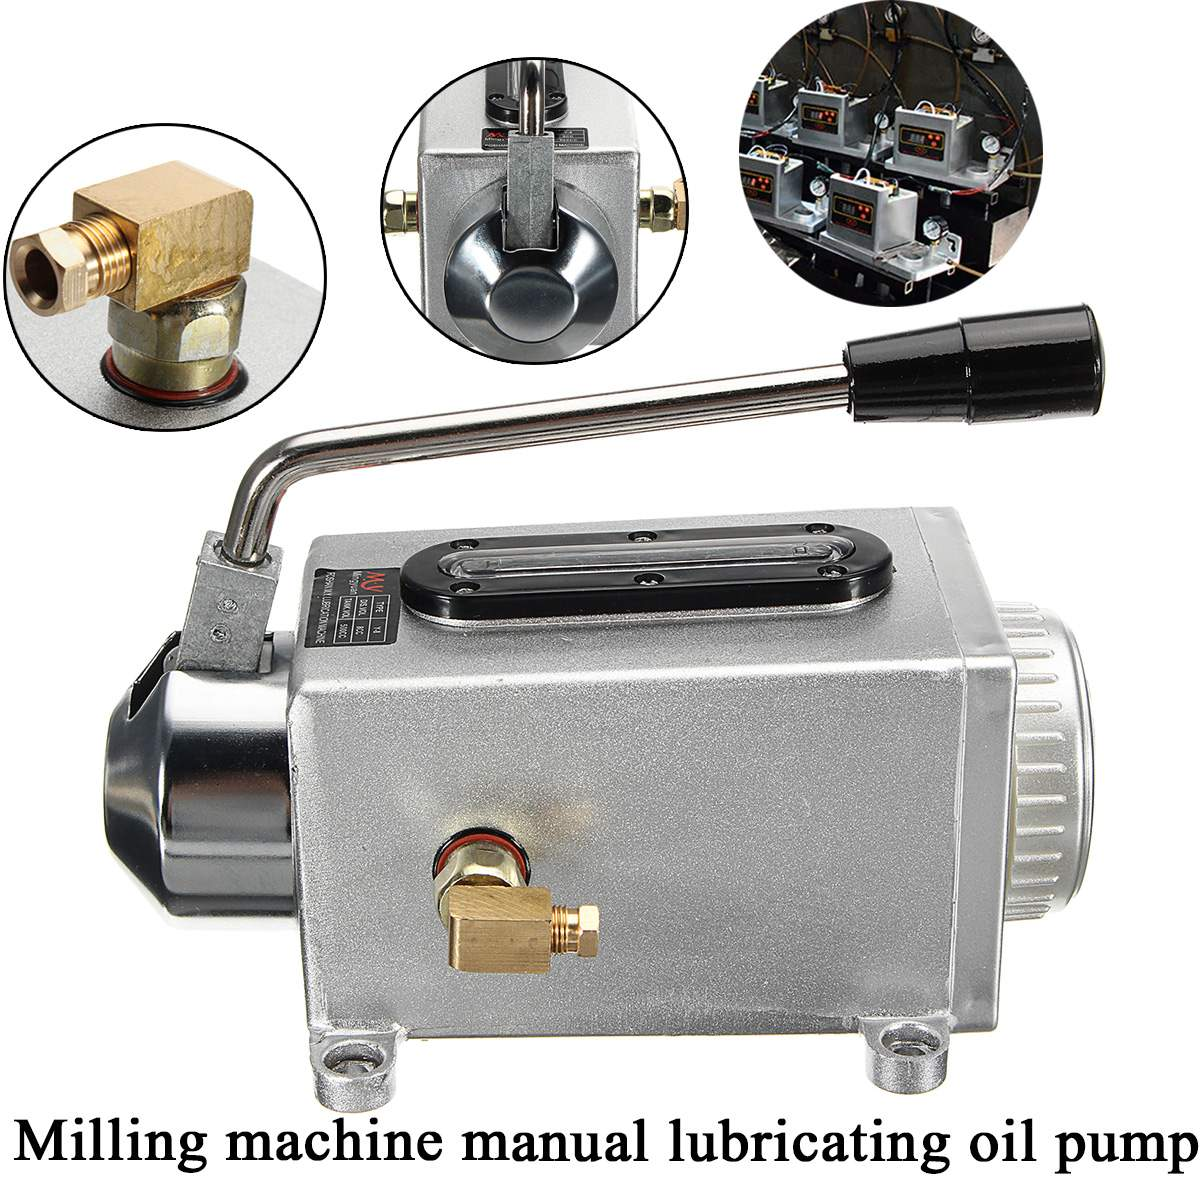 Y-8 Hand Operated Manual Pump Lubrication Punching Pump Oil Machine CNC Machine Oiler